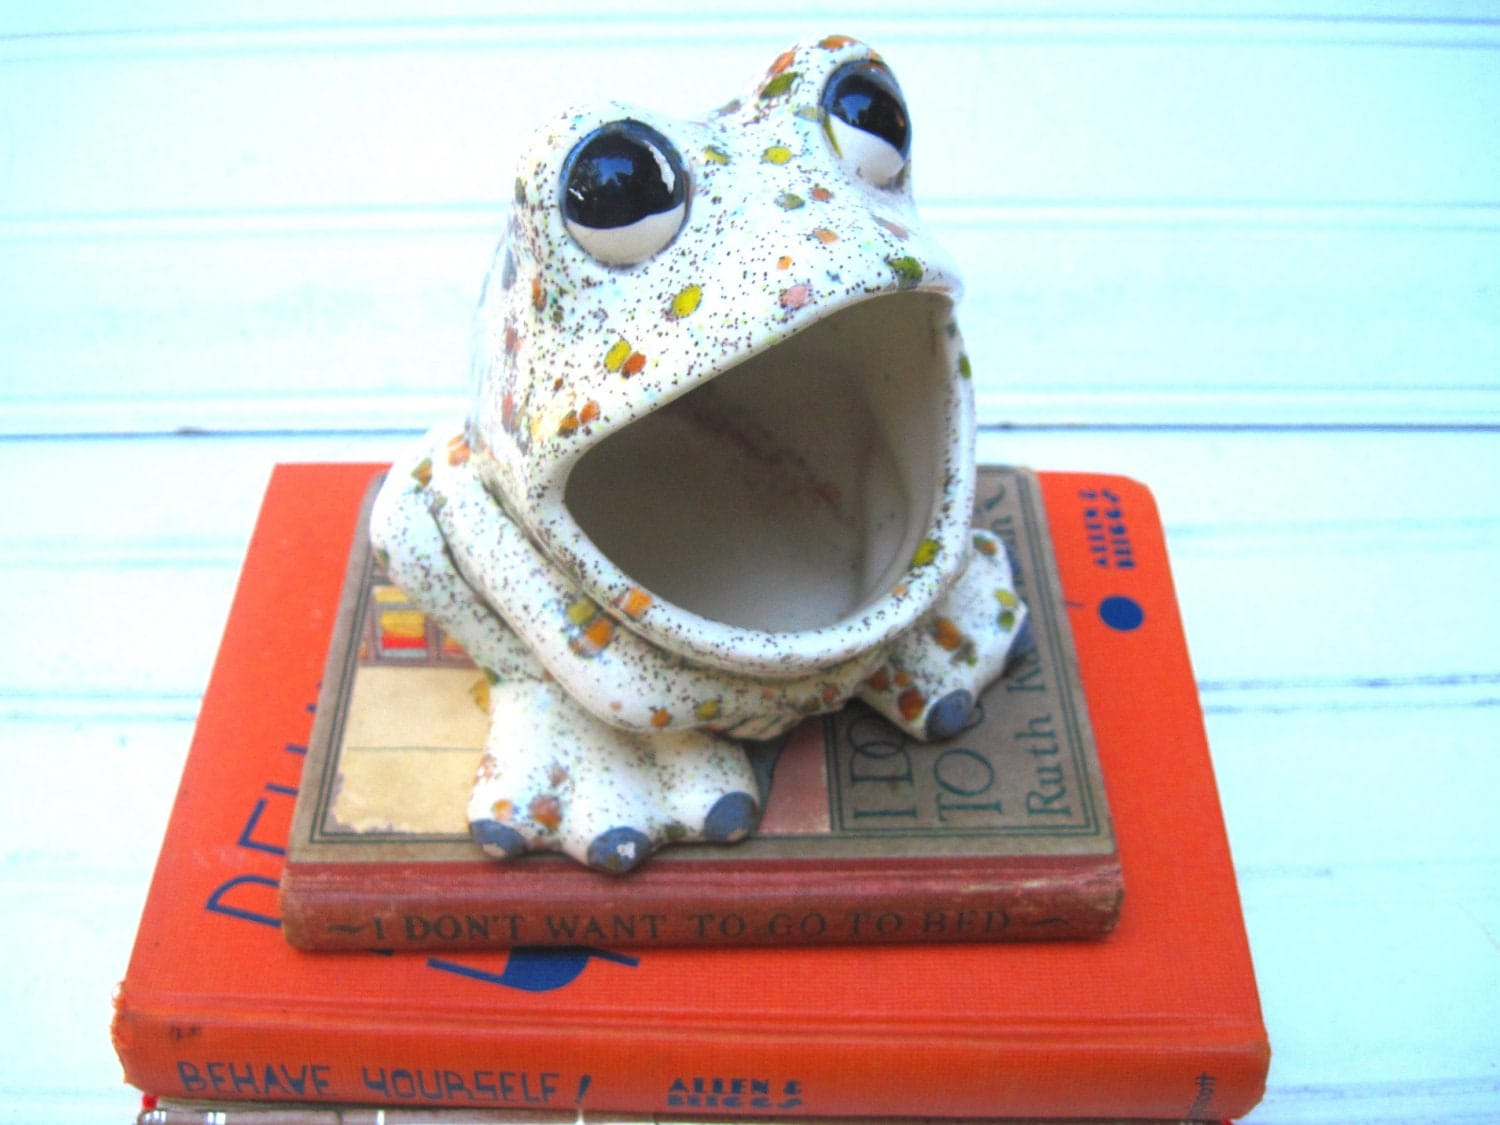 Toad frog sponge holder kitchen sink dish washing - Frog sponge holder kitchen sink ...